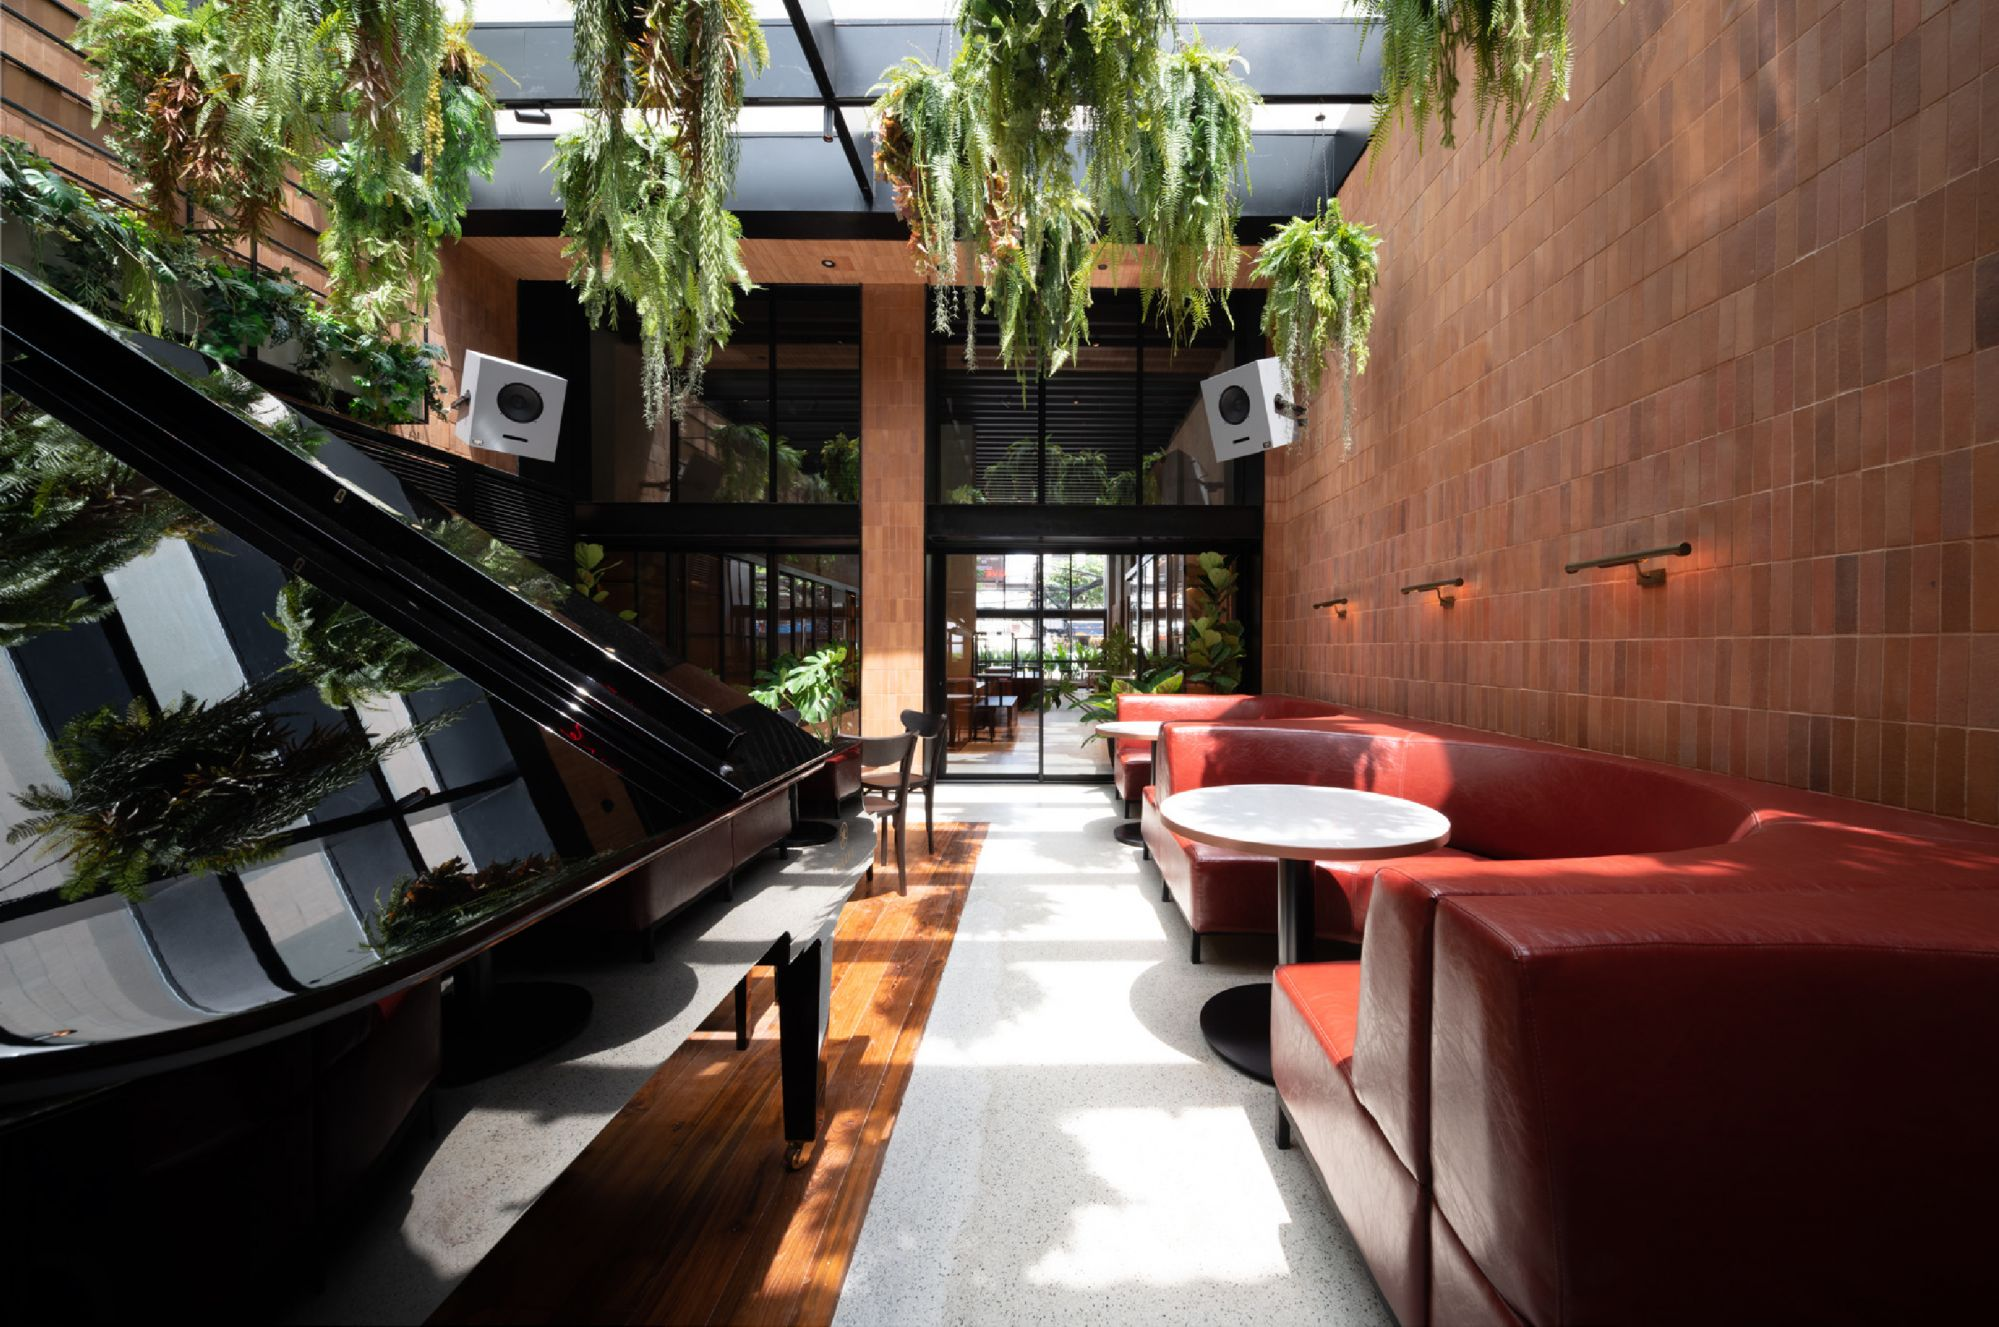 Siwilai Cafe's Second Branch Opens At Central: The Original Store